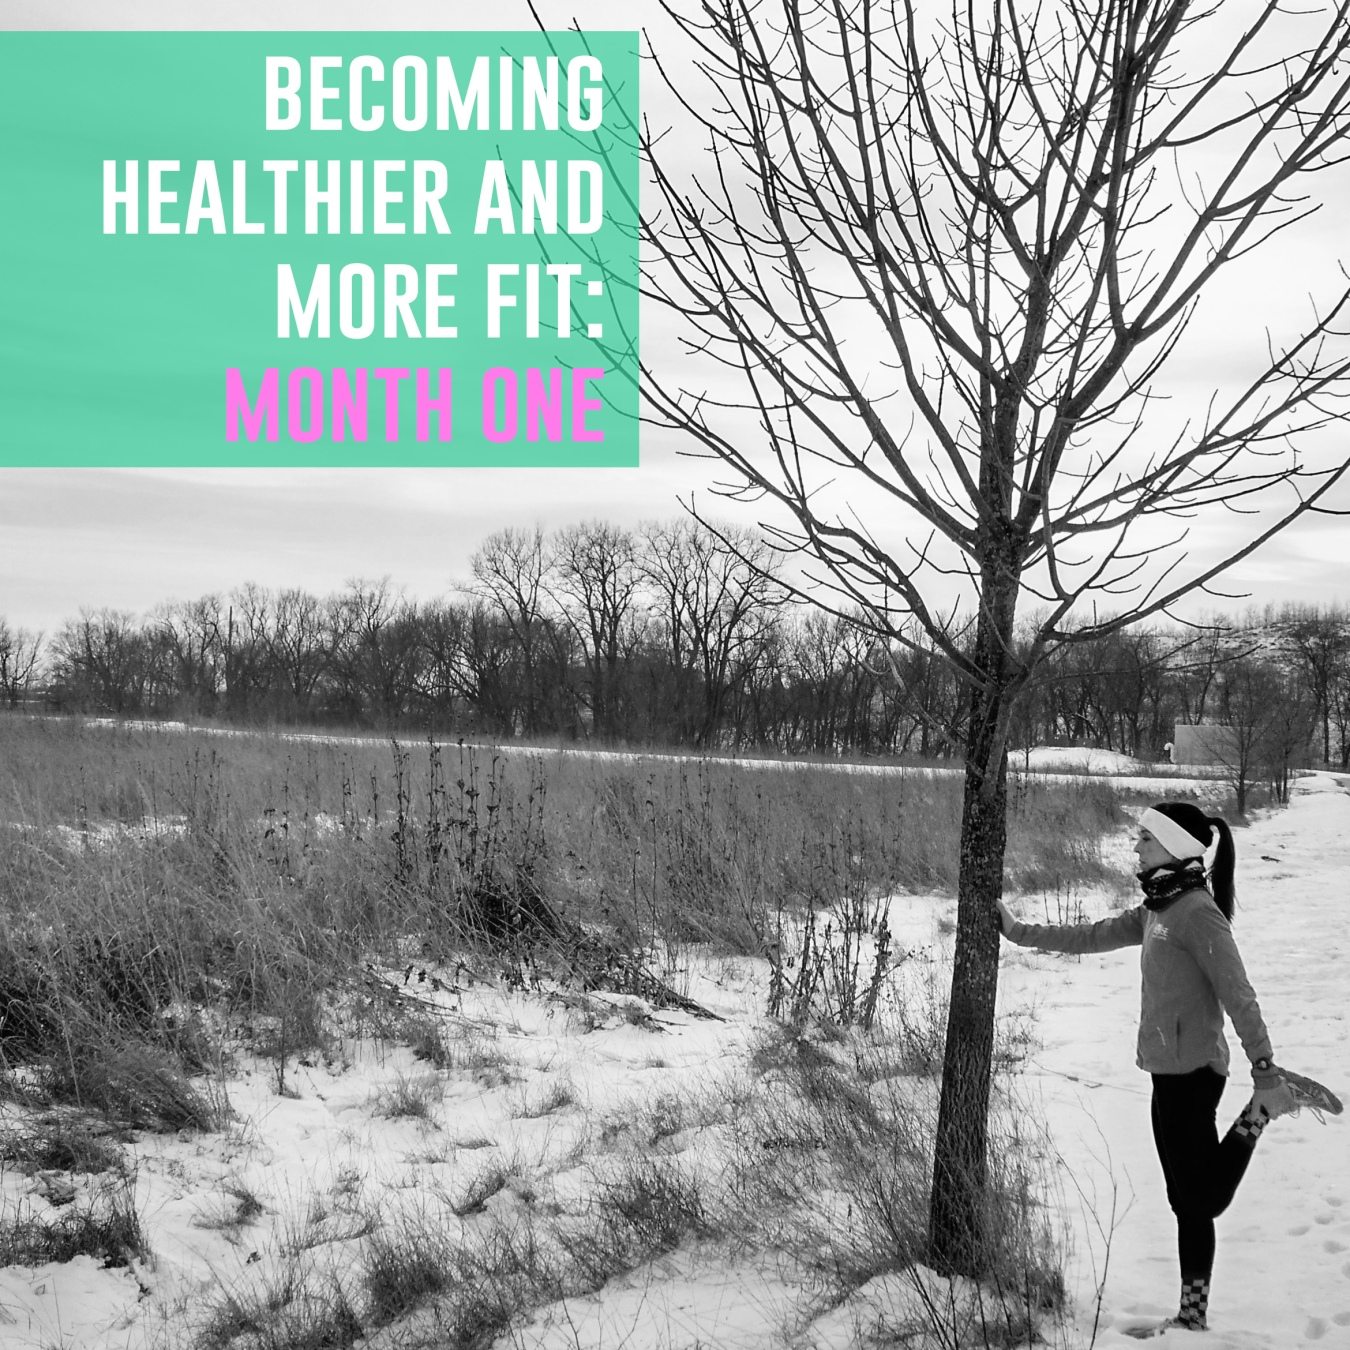 Becoming Healthier and More Fit_Month ONE